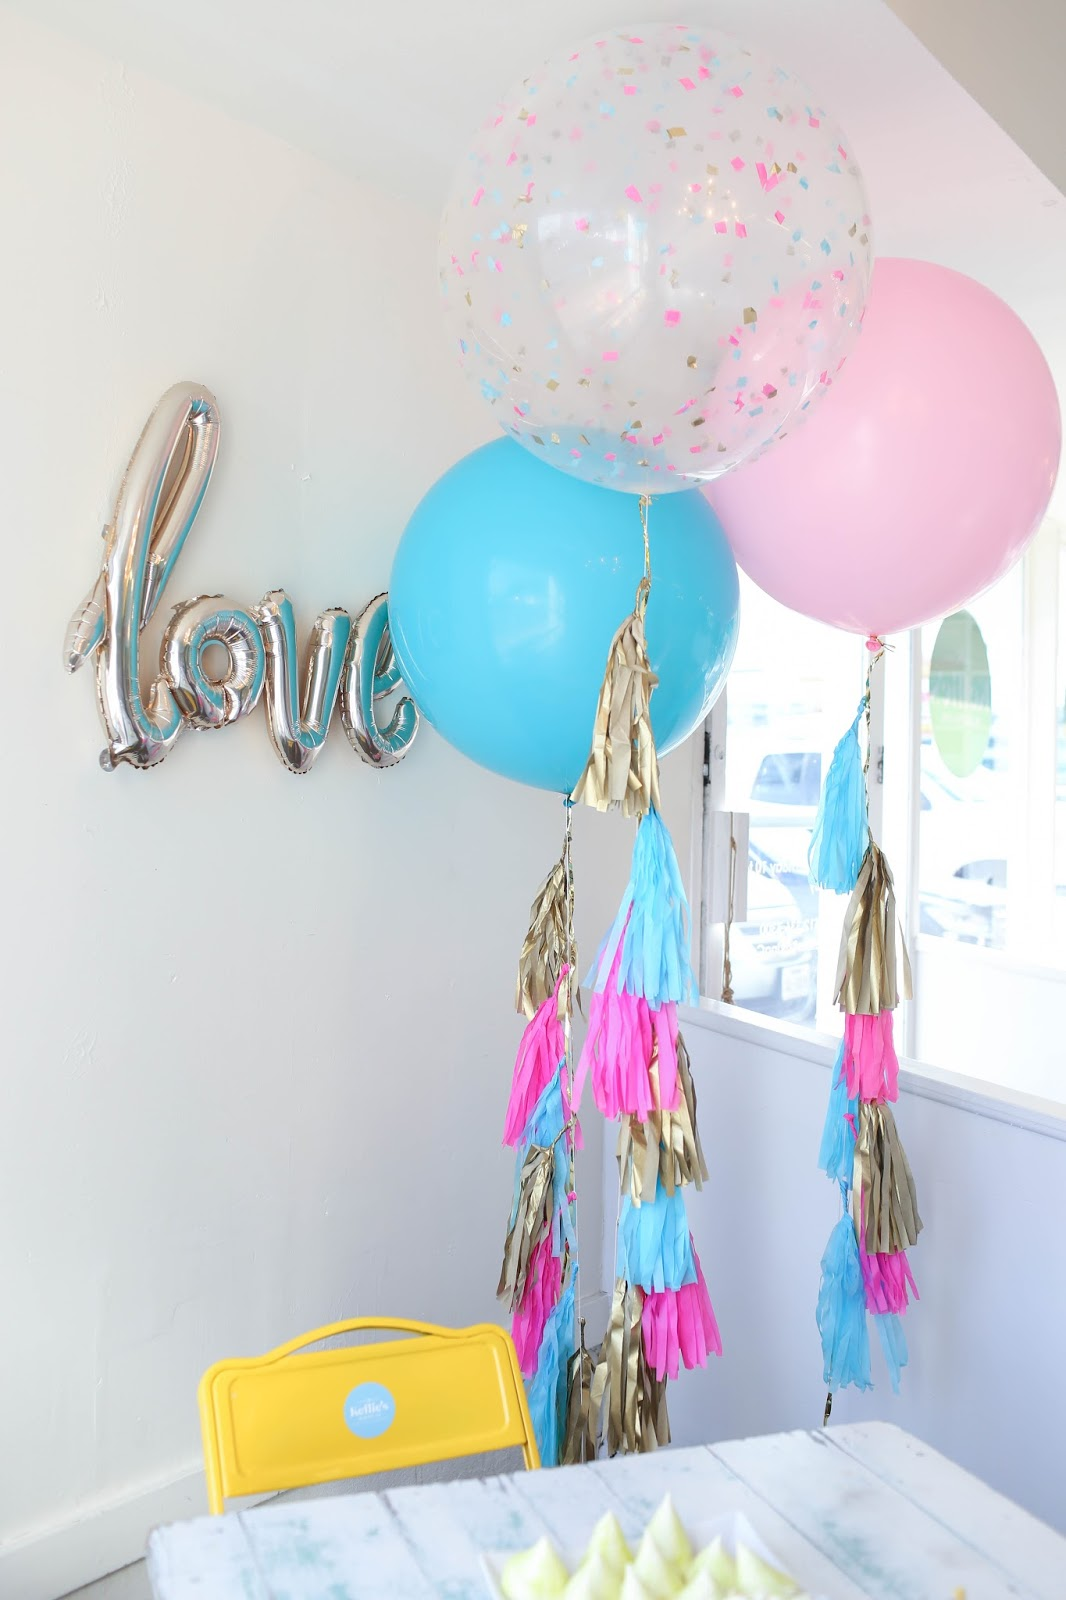 21st birthday party decoration